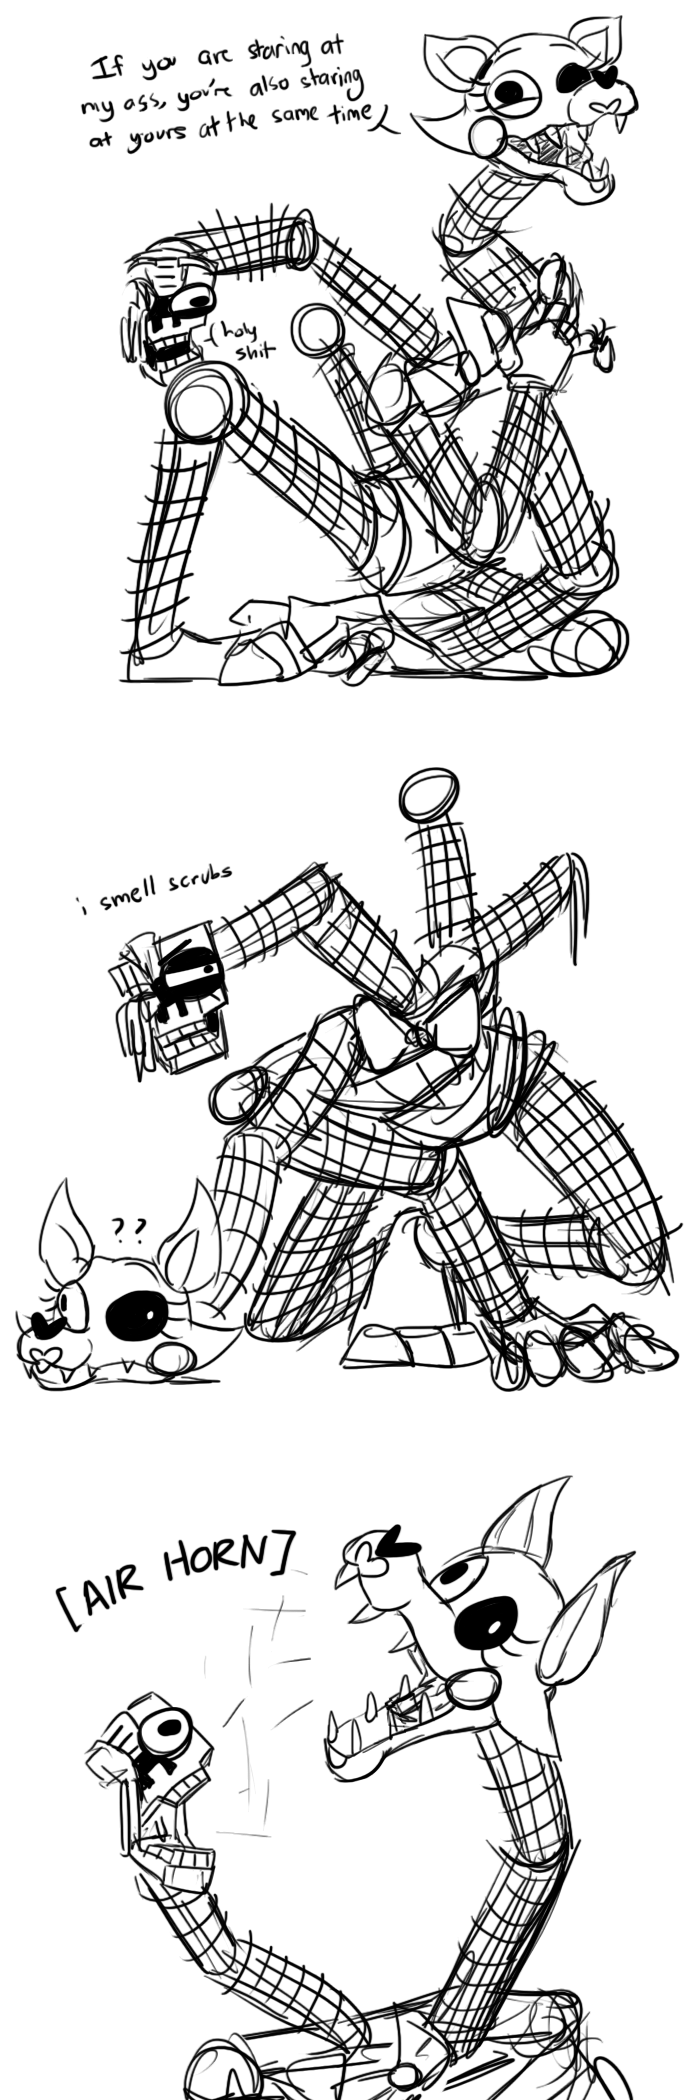 Mangle Likes Goofing Five Nights At Freddys Know Your Meme